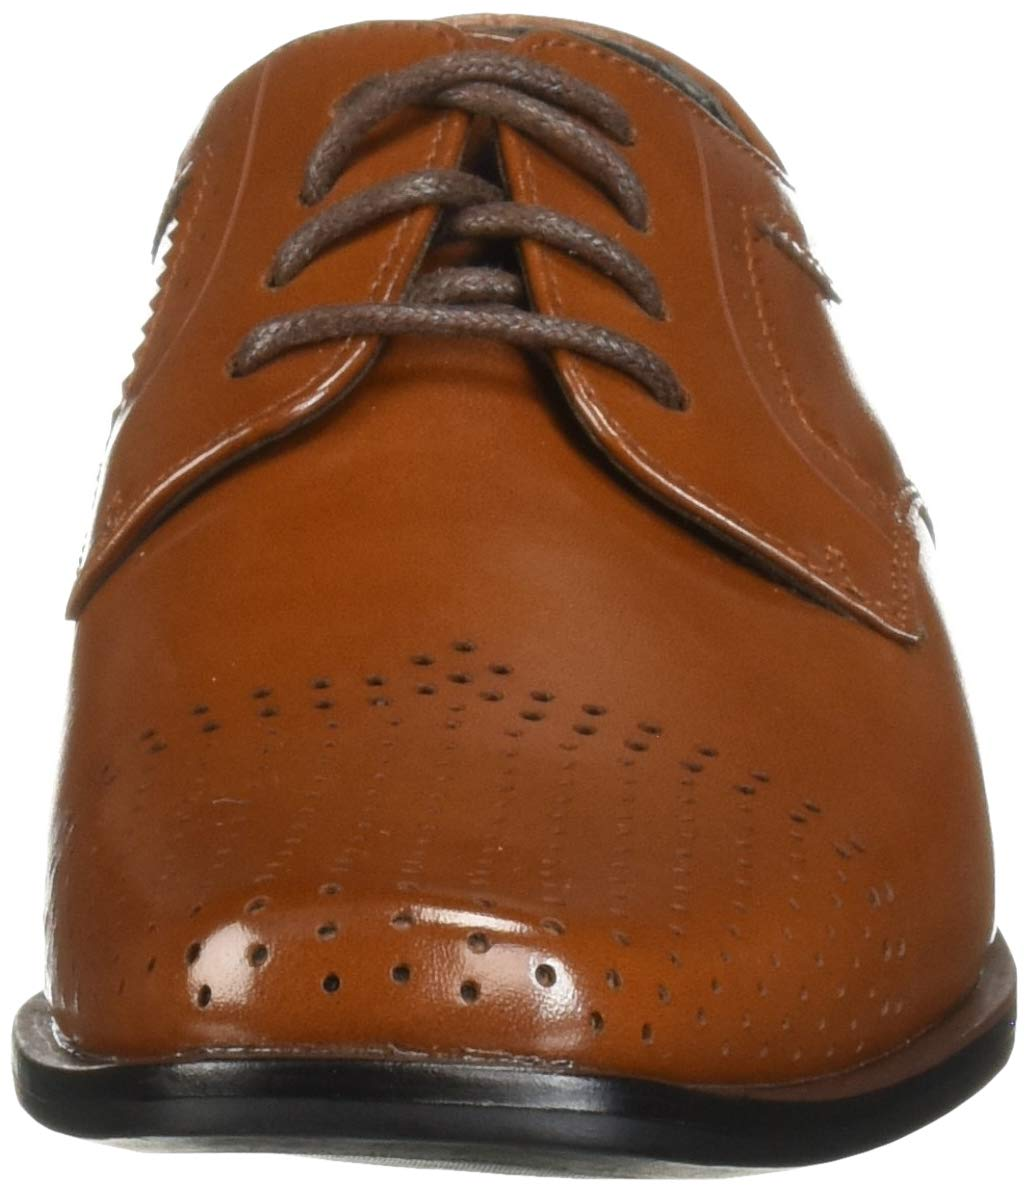 STACY ADAMS Unisex Sanborn Perfed Cap Toe Lace-Up Oxford, Cognac 5 M US Big Kid by STACY ADAMS (Image #4)